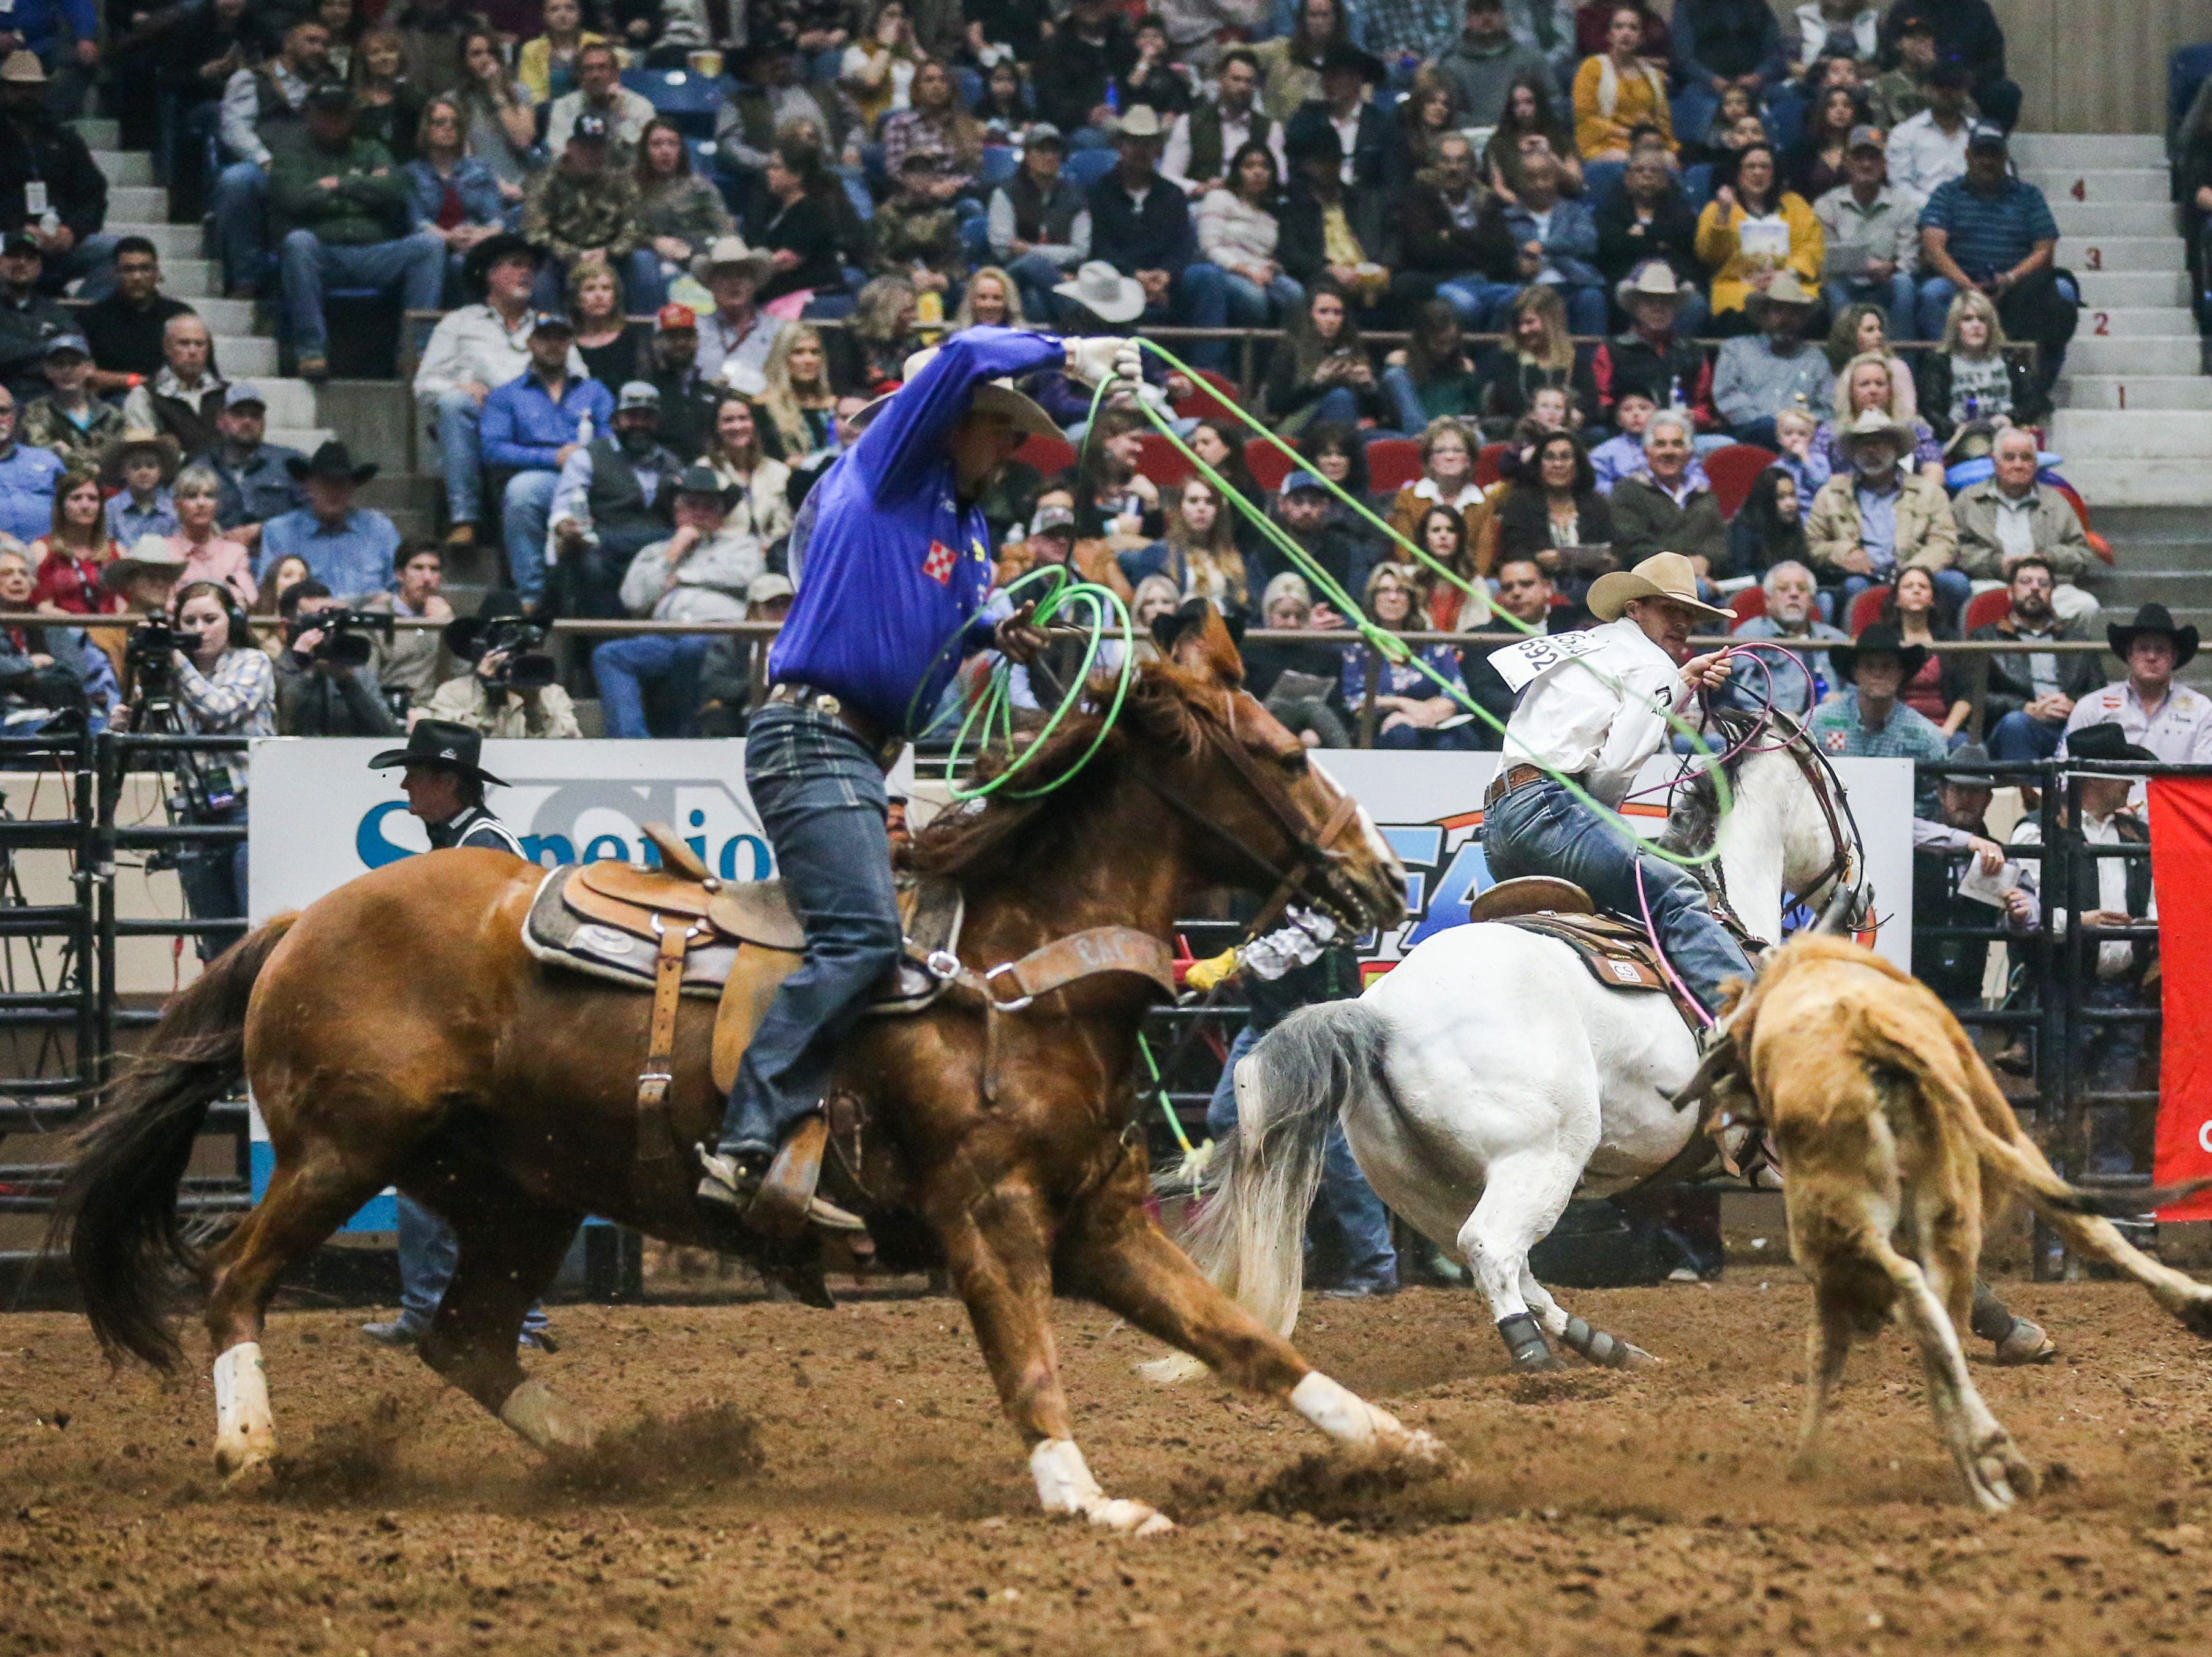 Clay Smith rides with Jake Long in team roping during the 3rd performance of the San Angelo Stock Show & Rodeo Saturday, Feb. 2, 2019, at Foster Communications Coliseum.